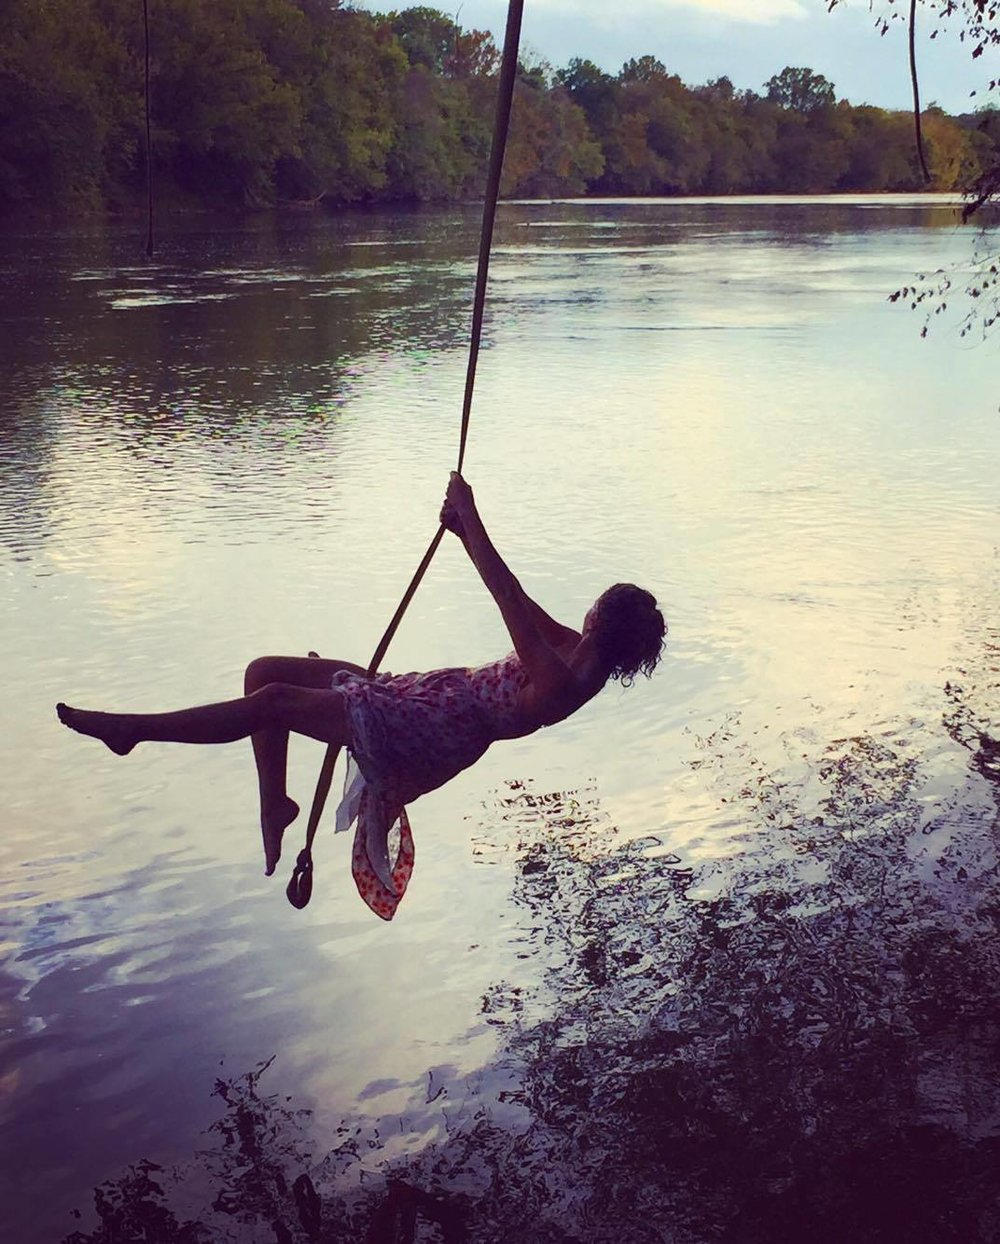 Michaela Coleman on a rope swing over lake